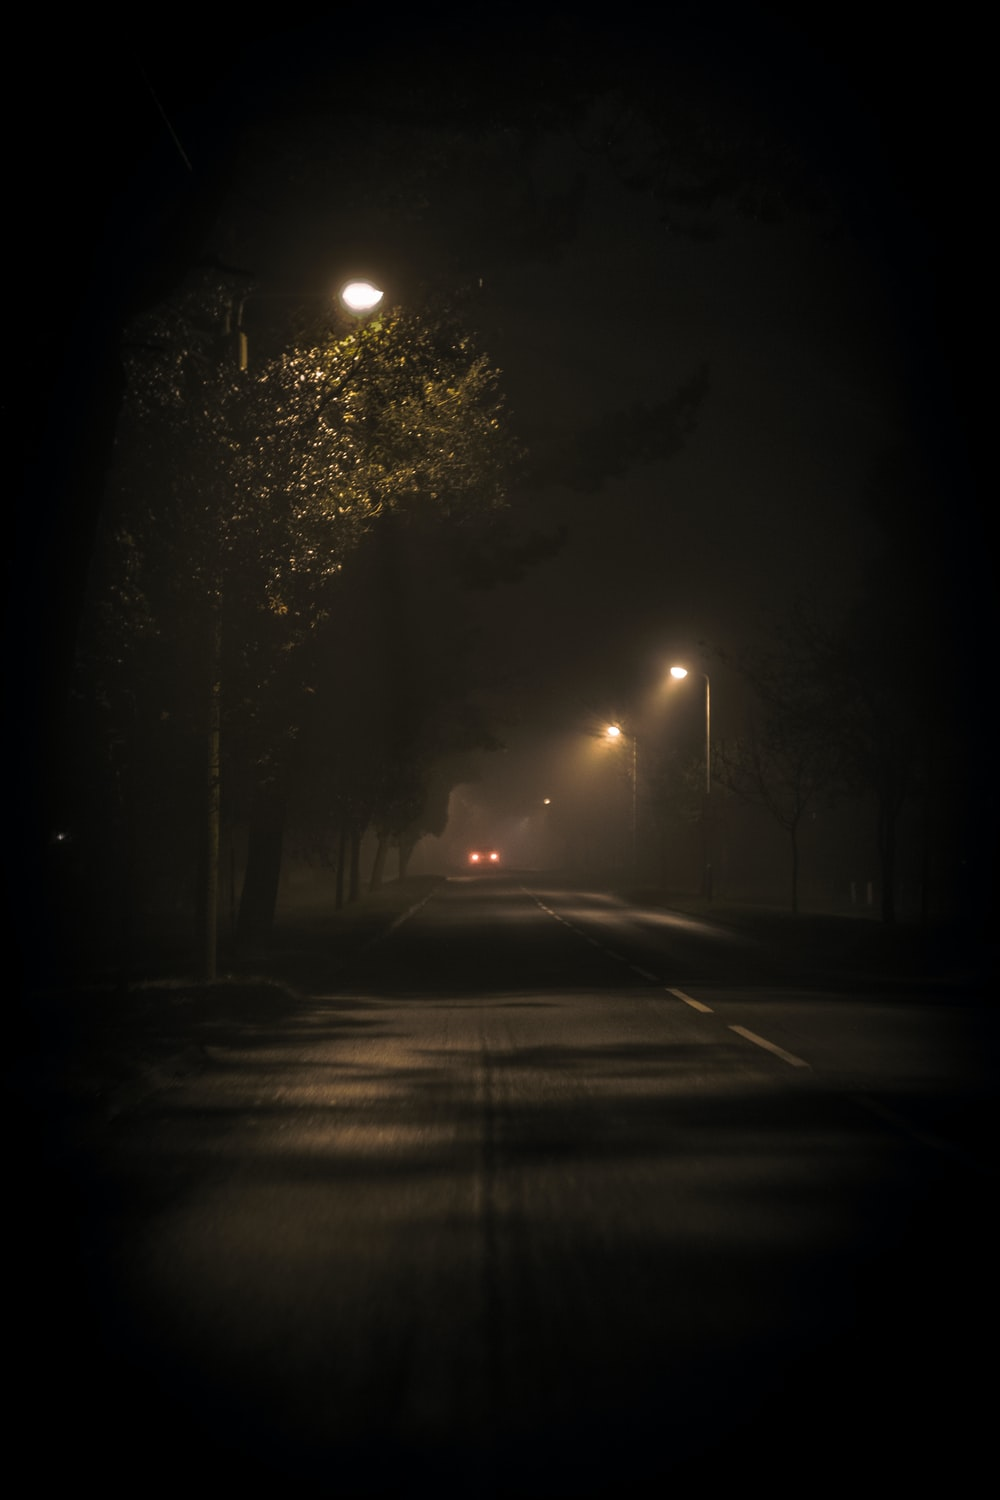 turned-on street lamps